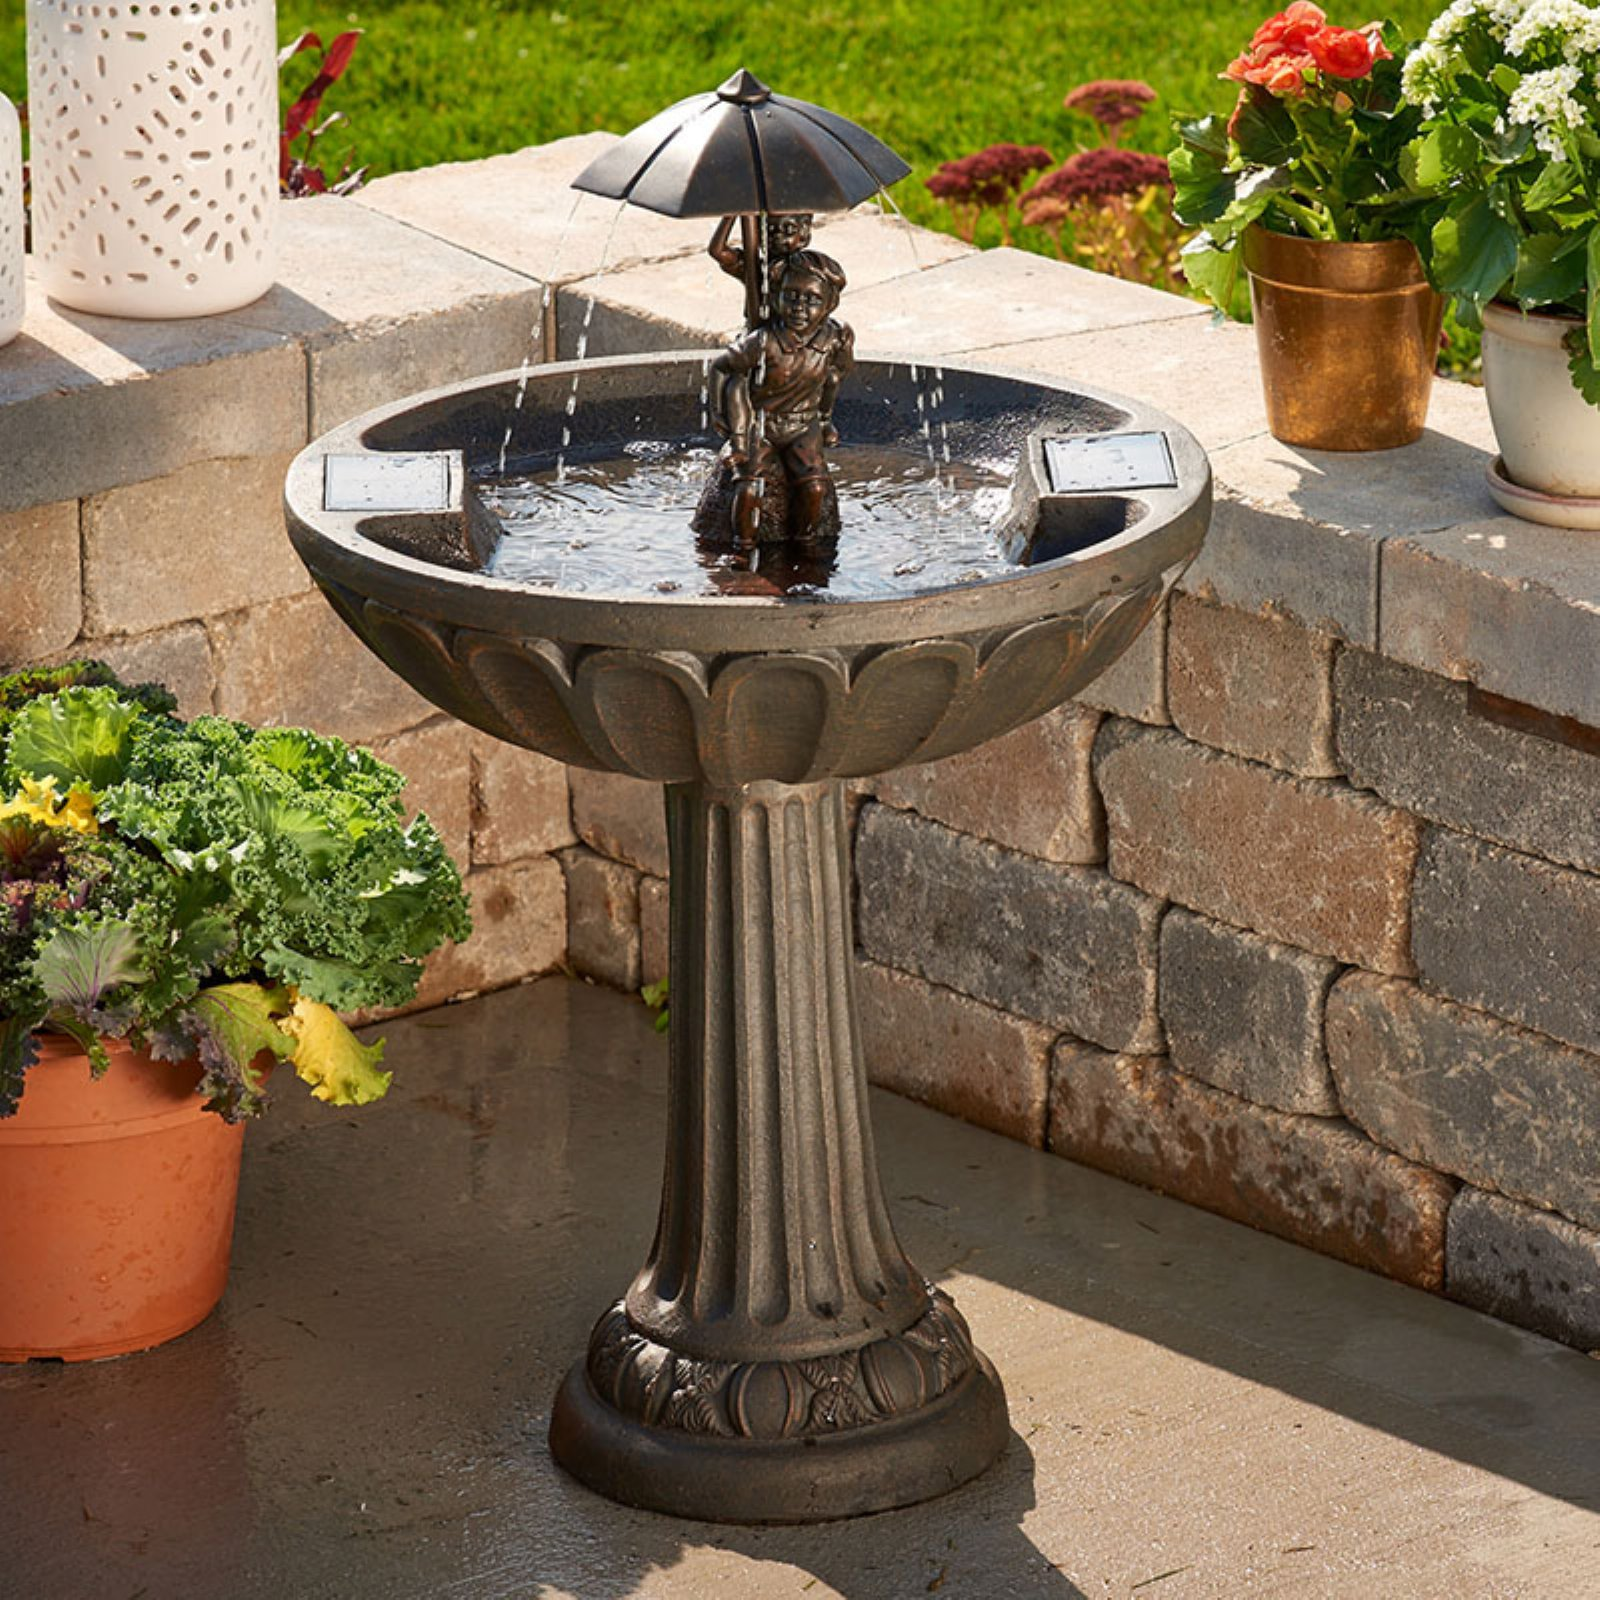 Umbrella Solar Fountain: Boy & Girl Piggyback by Smart Living Home & Garden